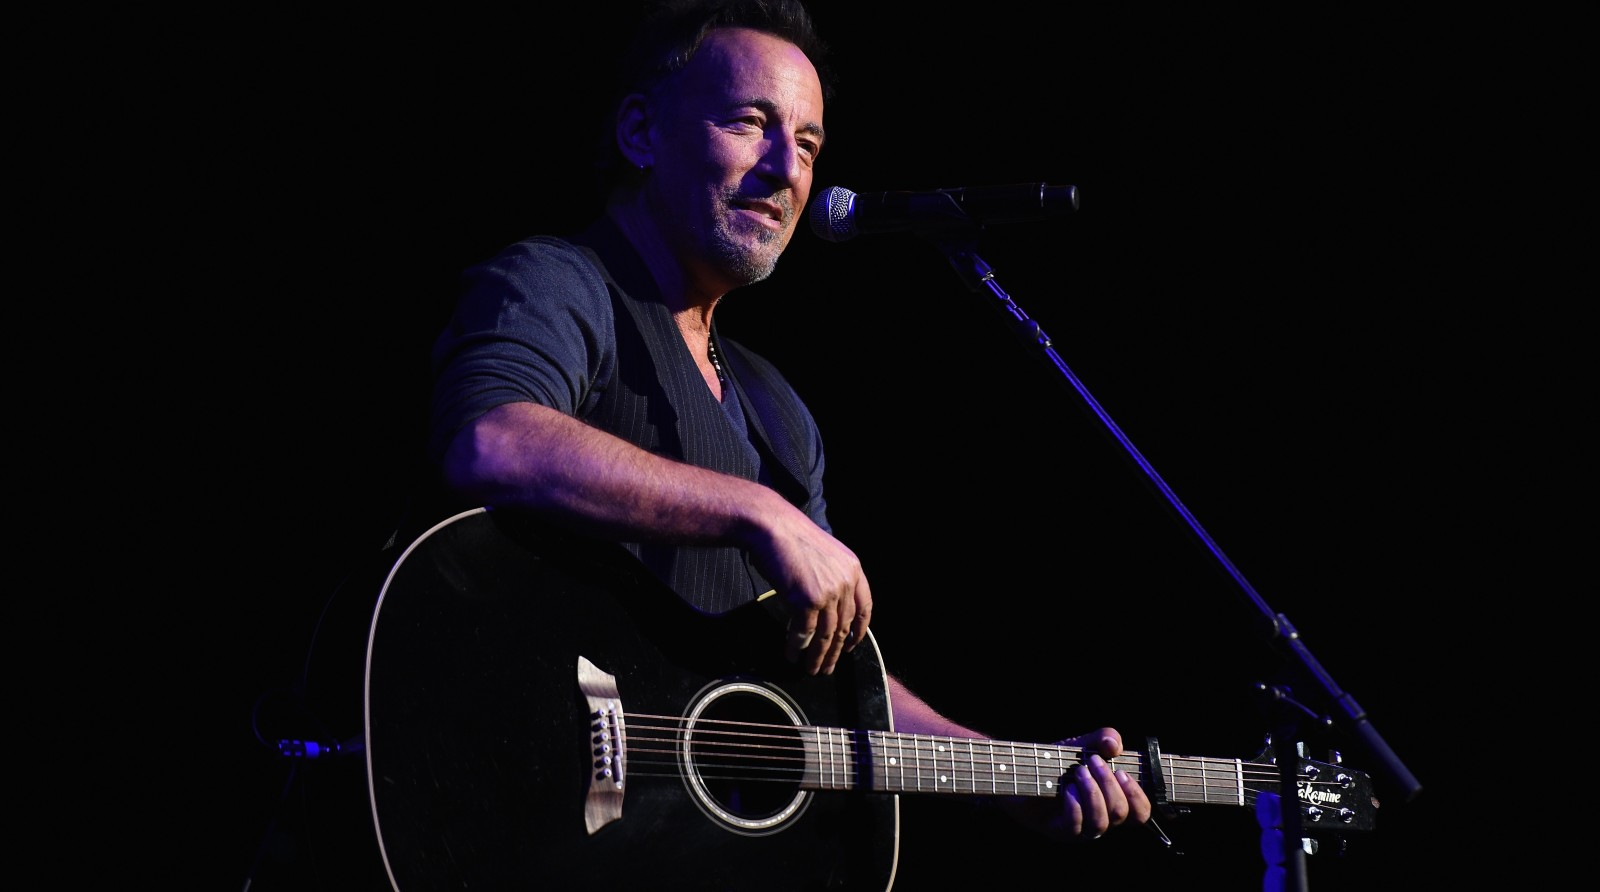 """Bruce Springsteen will perform """"The River"""" in its entirety at First Niagara Center. (Getty Images)"""